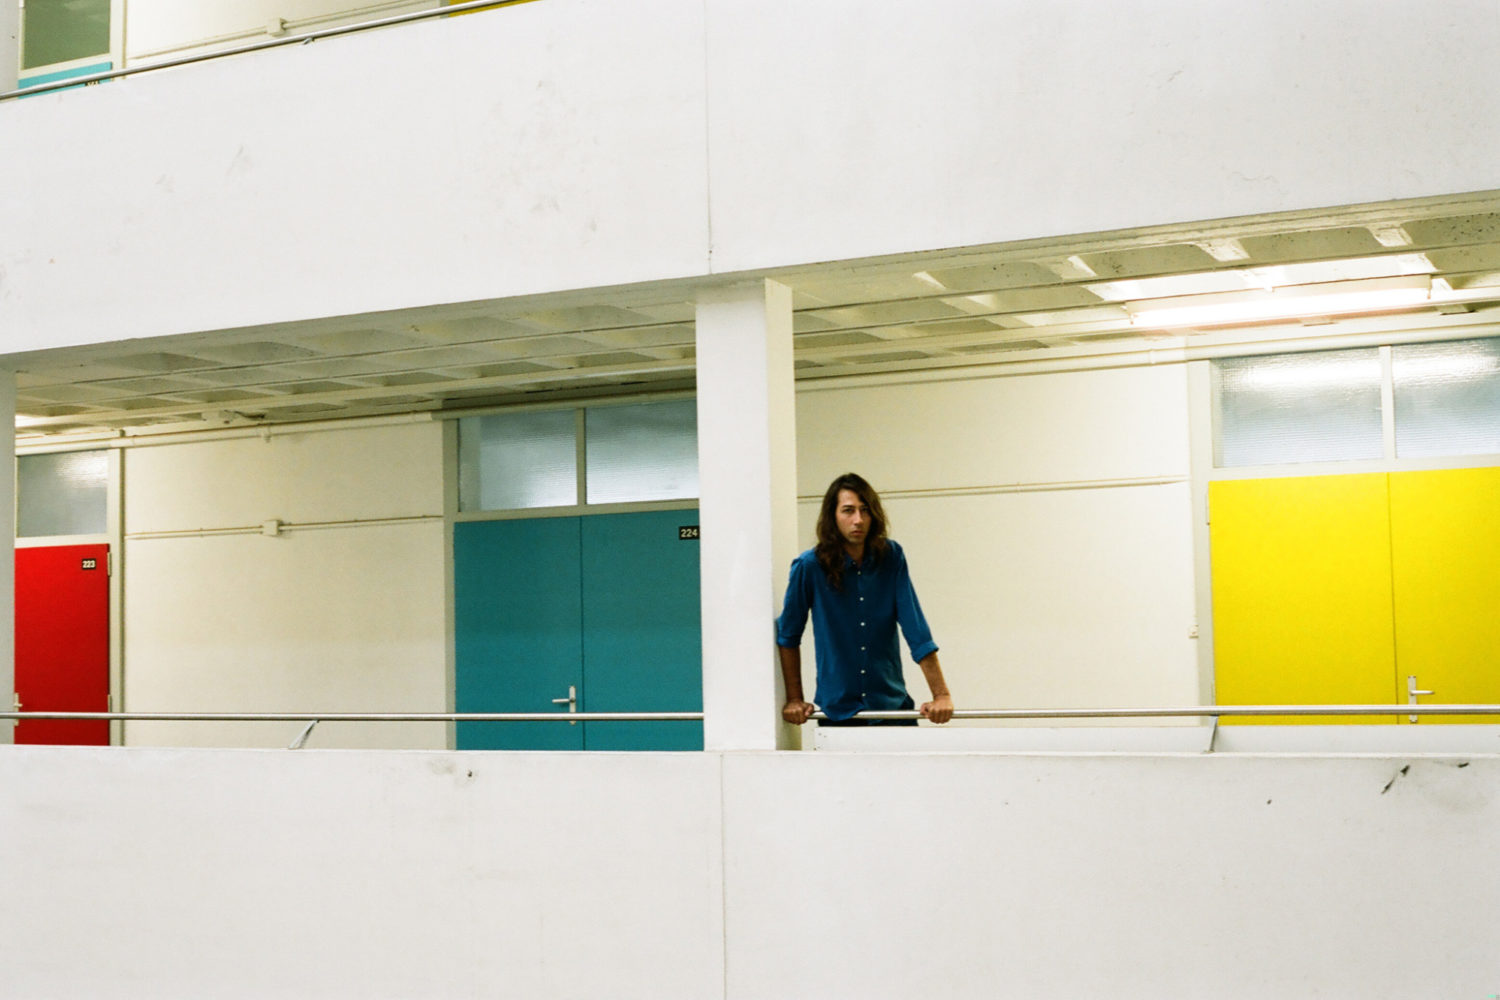 Kindness shares new '8th Wonder' song in BBC 'Bedtime Mix', streams album in full